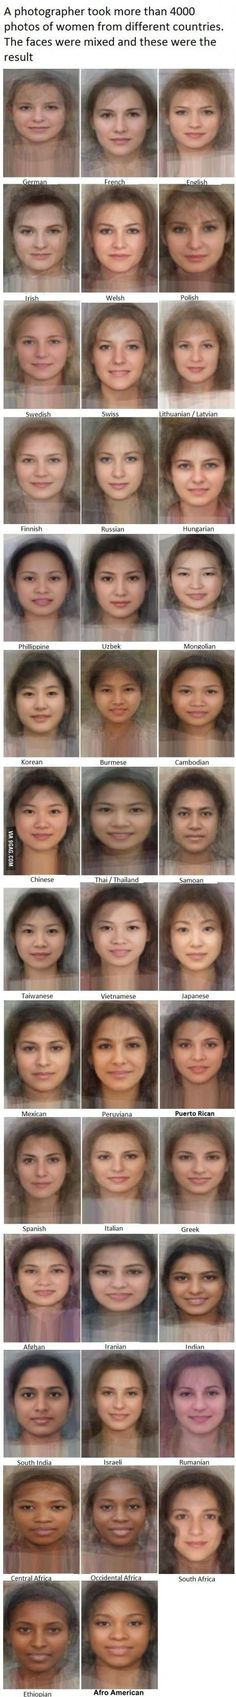 Average face from women from different countries - 9GAG